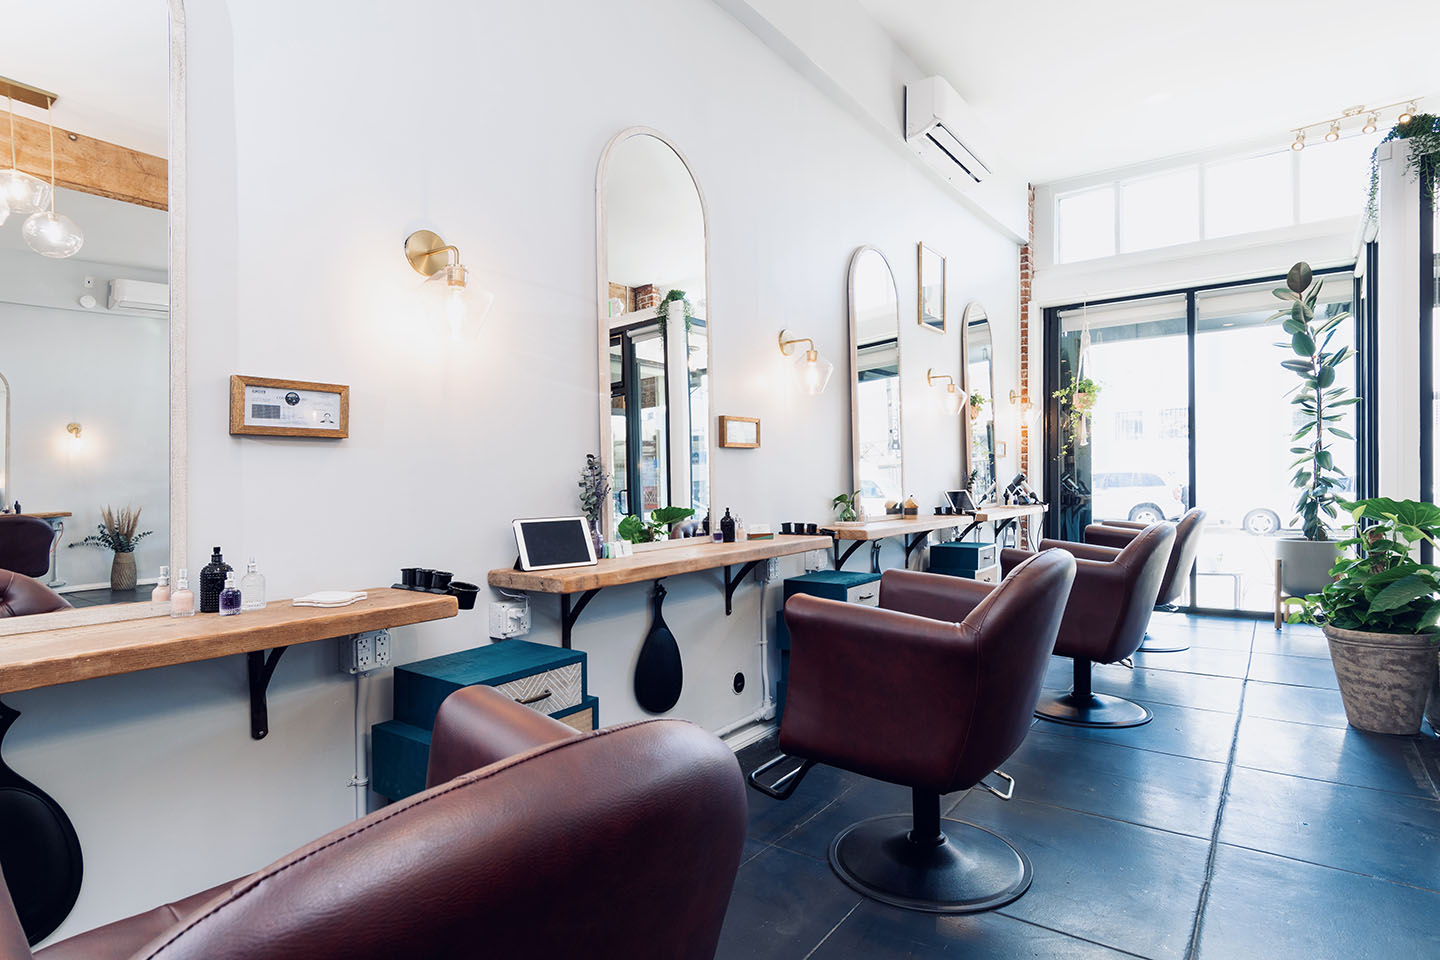 Tufted Salon Chairs at The Hair Parlor on 8th in Los Angeles